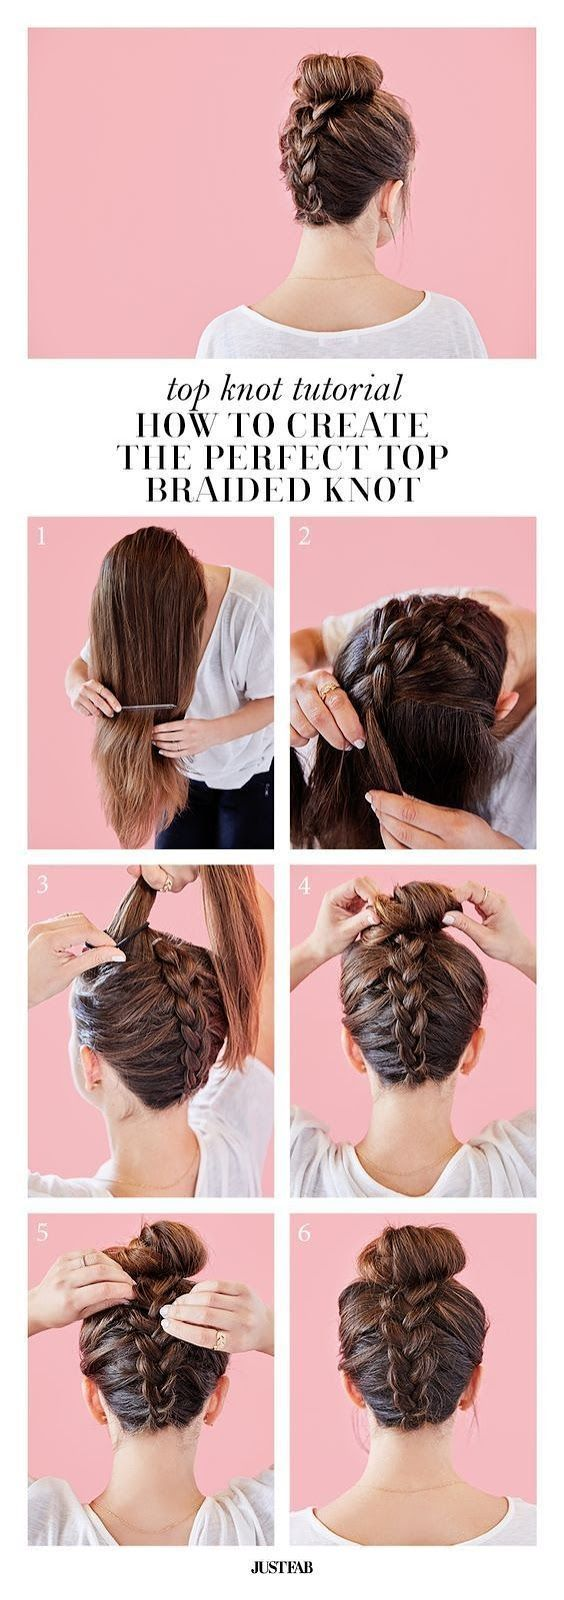 65 Quick And Easy Braided Hairstyles